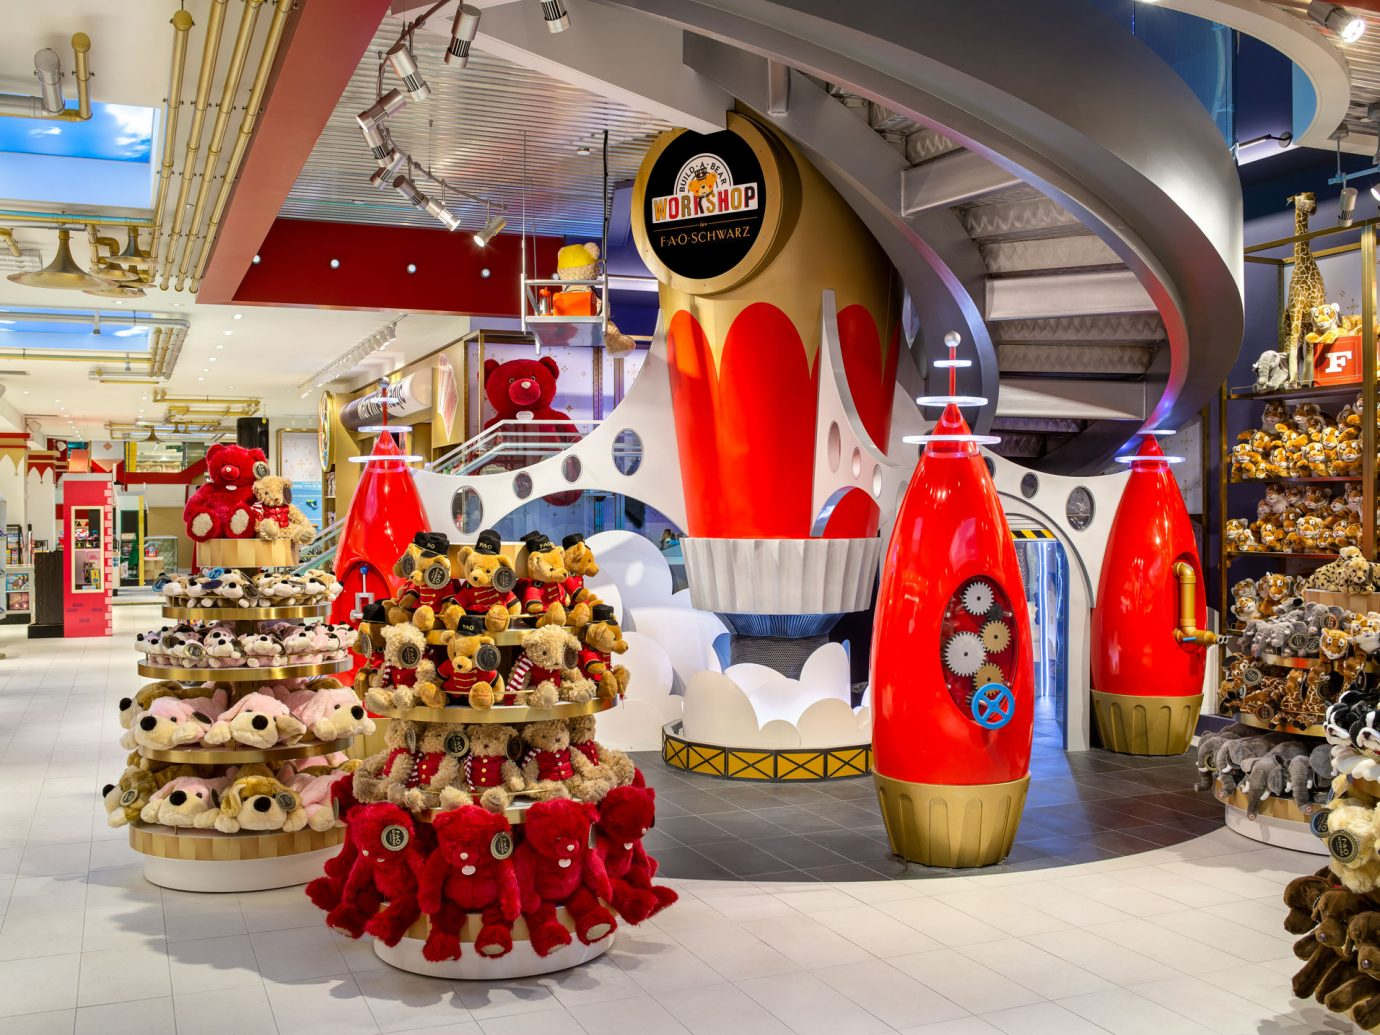 FAO Schwartz interior with a large rocket display